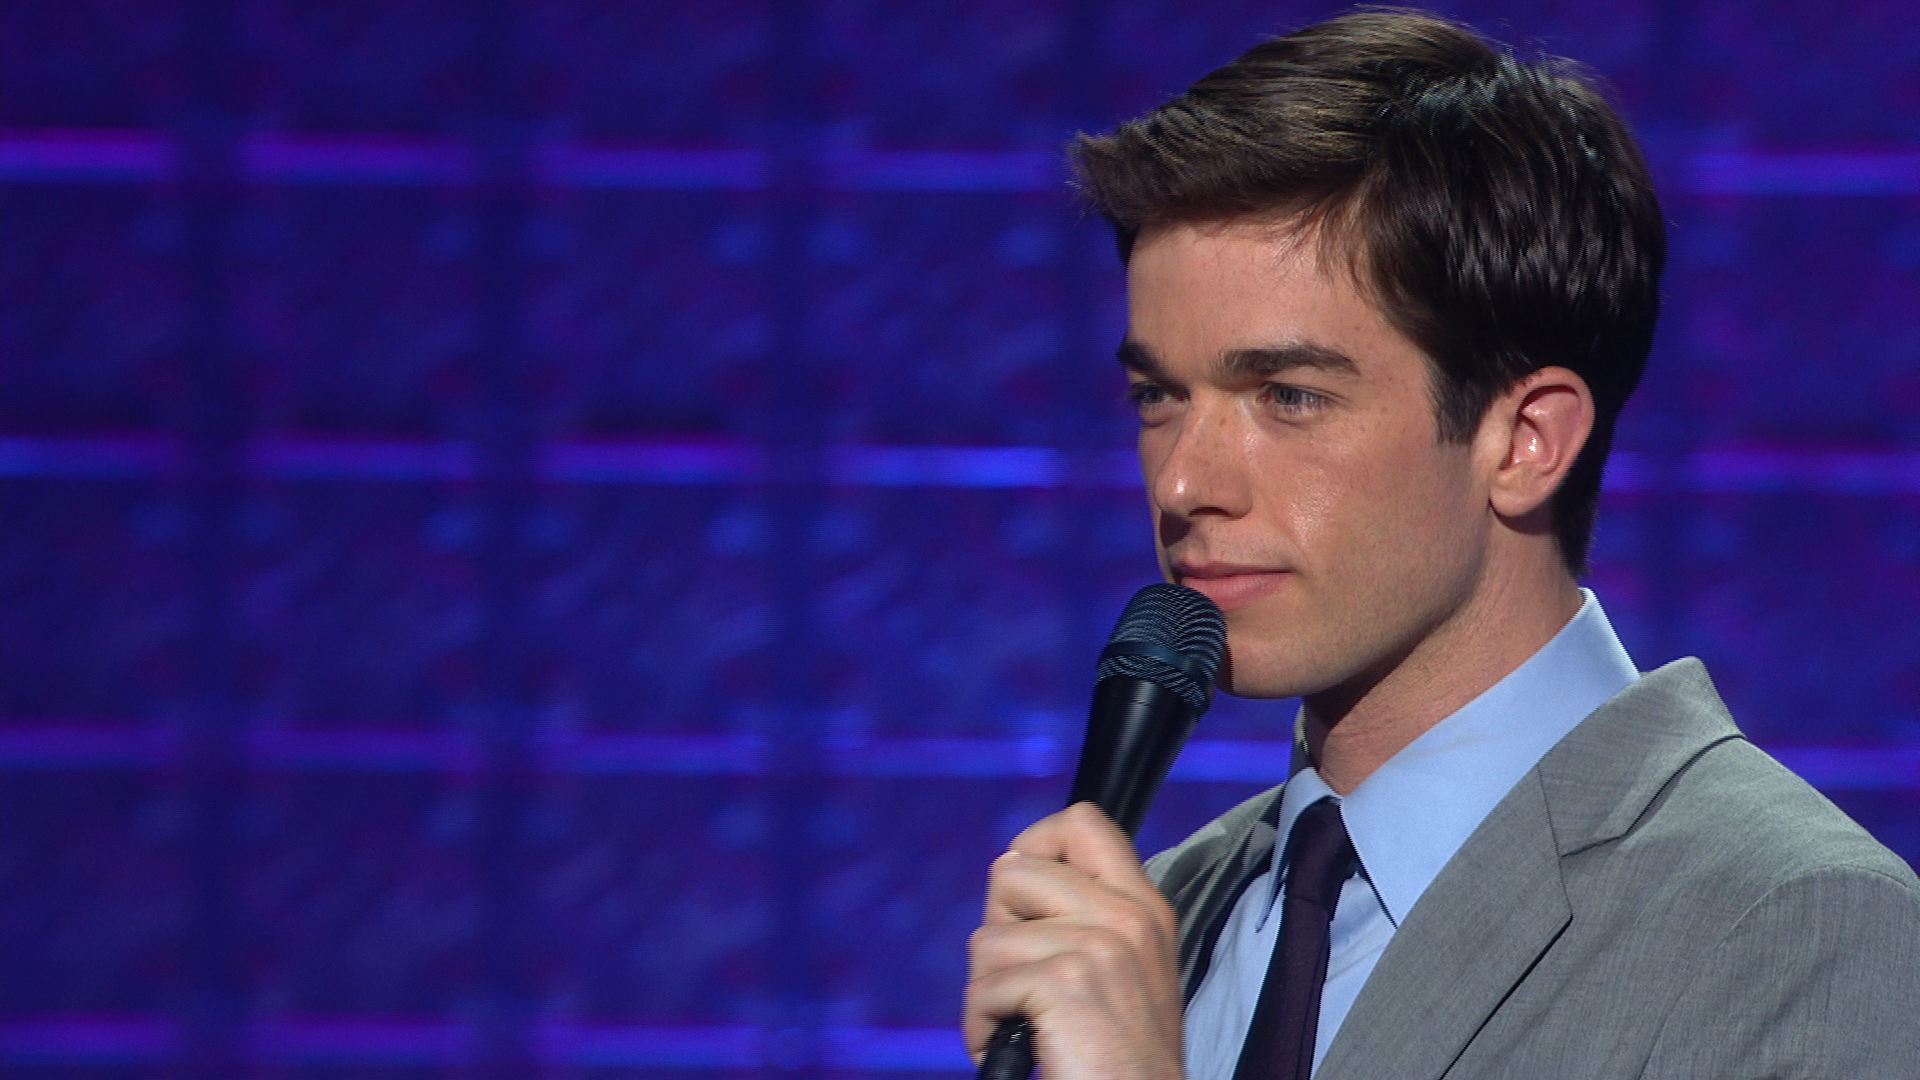 John Mulaney - Crime in the 1930s